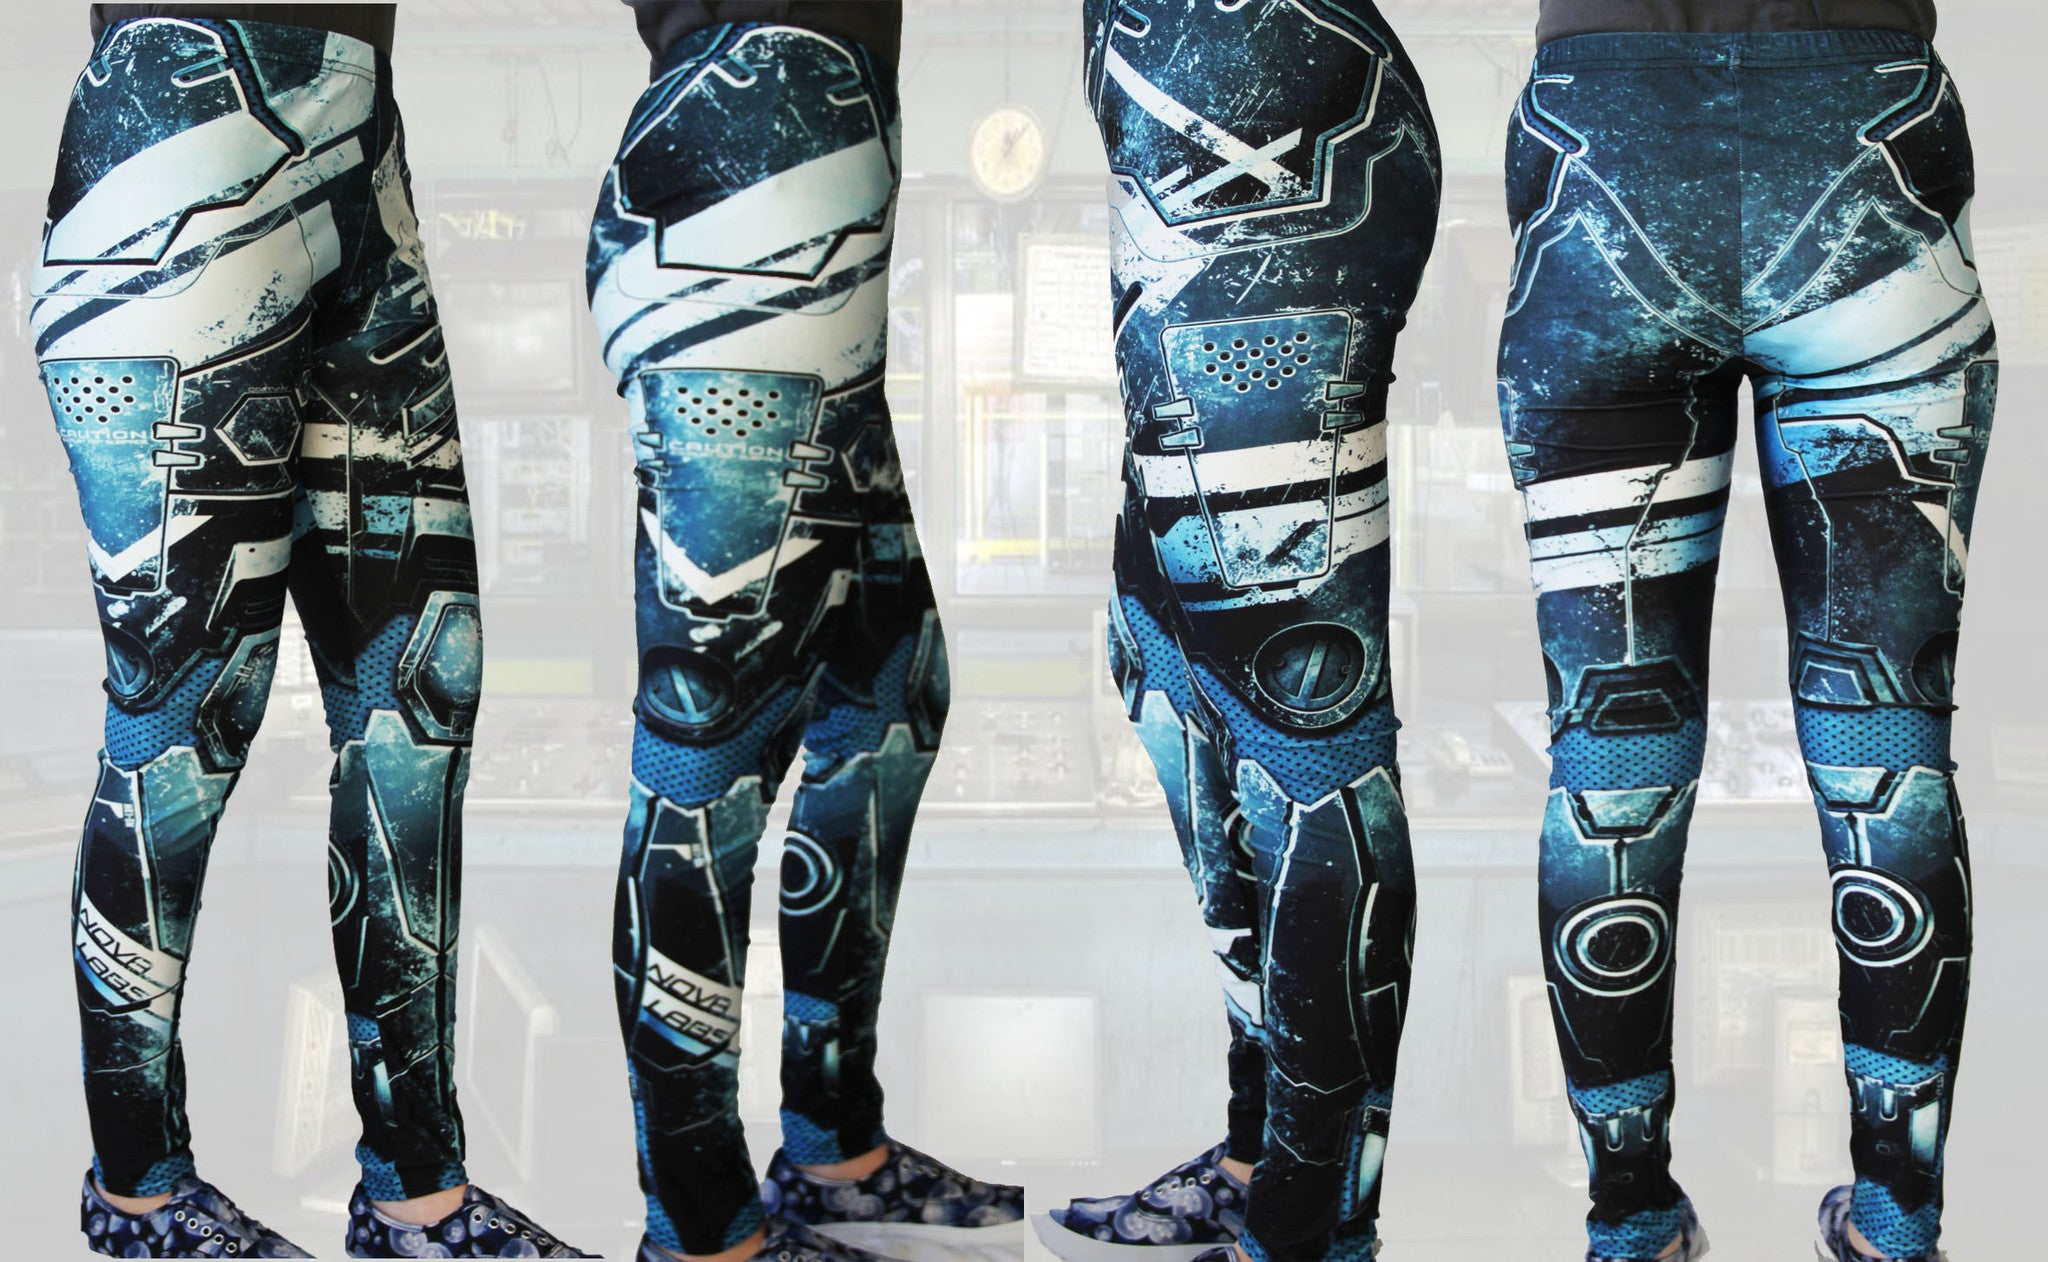 Animated Metal Armour Stretchy Geek Leggings - Consulting Fangeeks - 2